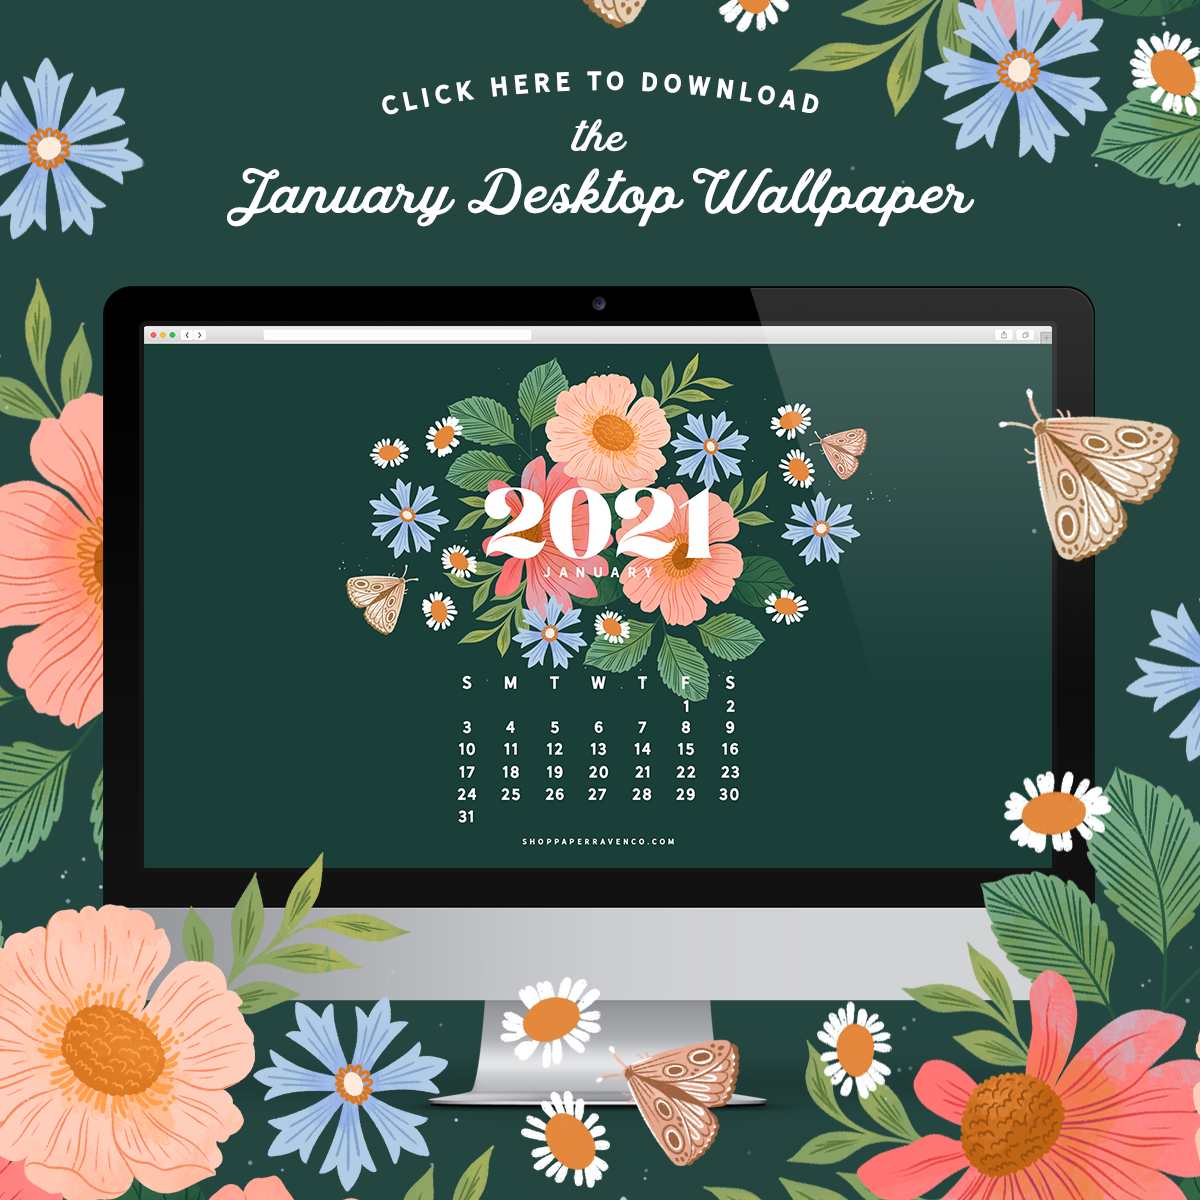 January 2021 Illustrated Desktop Wallpaper by Paper Raven Co. #dressyourtech #happynewyear #desktopwallpaper